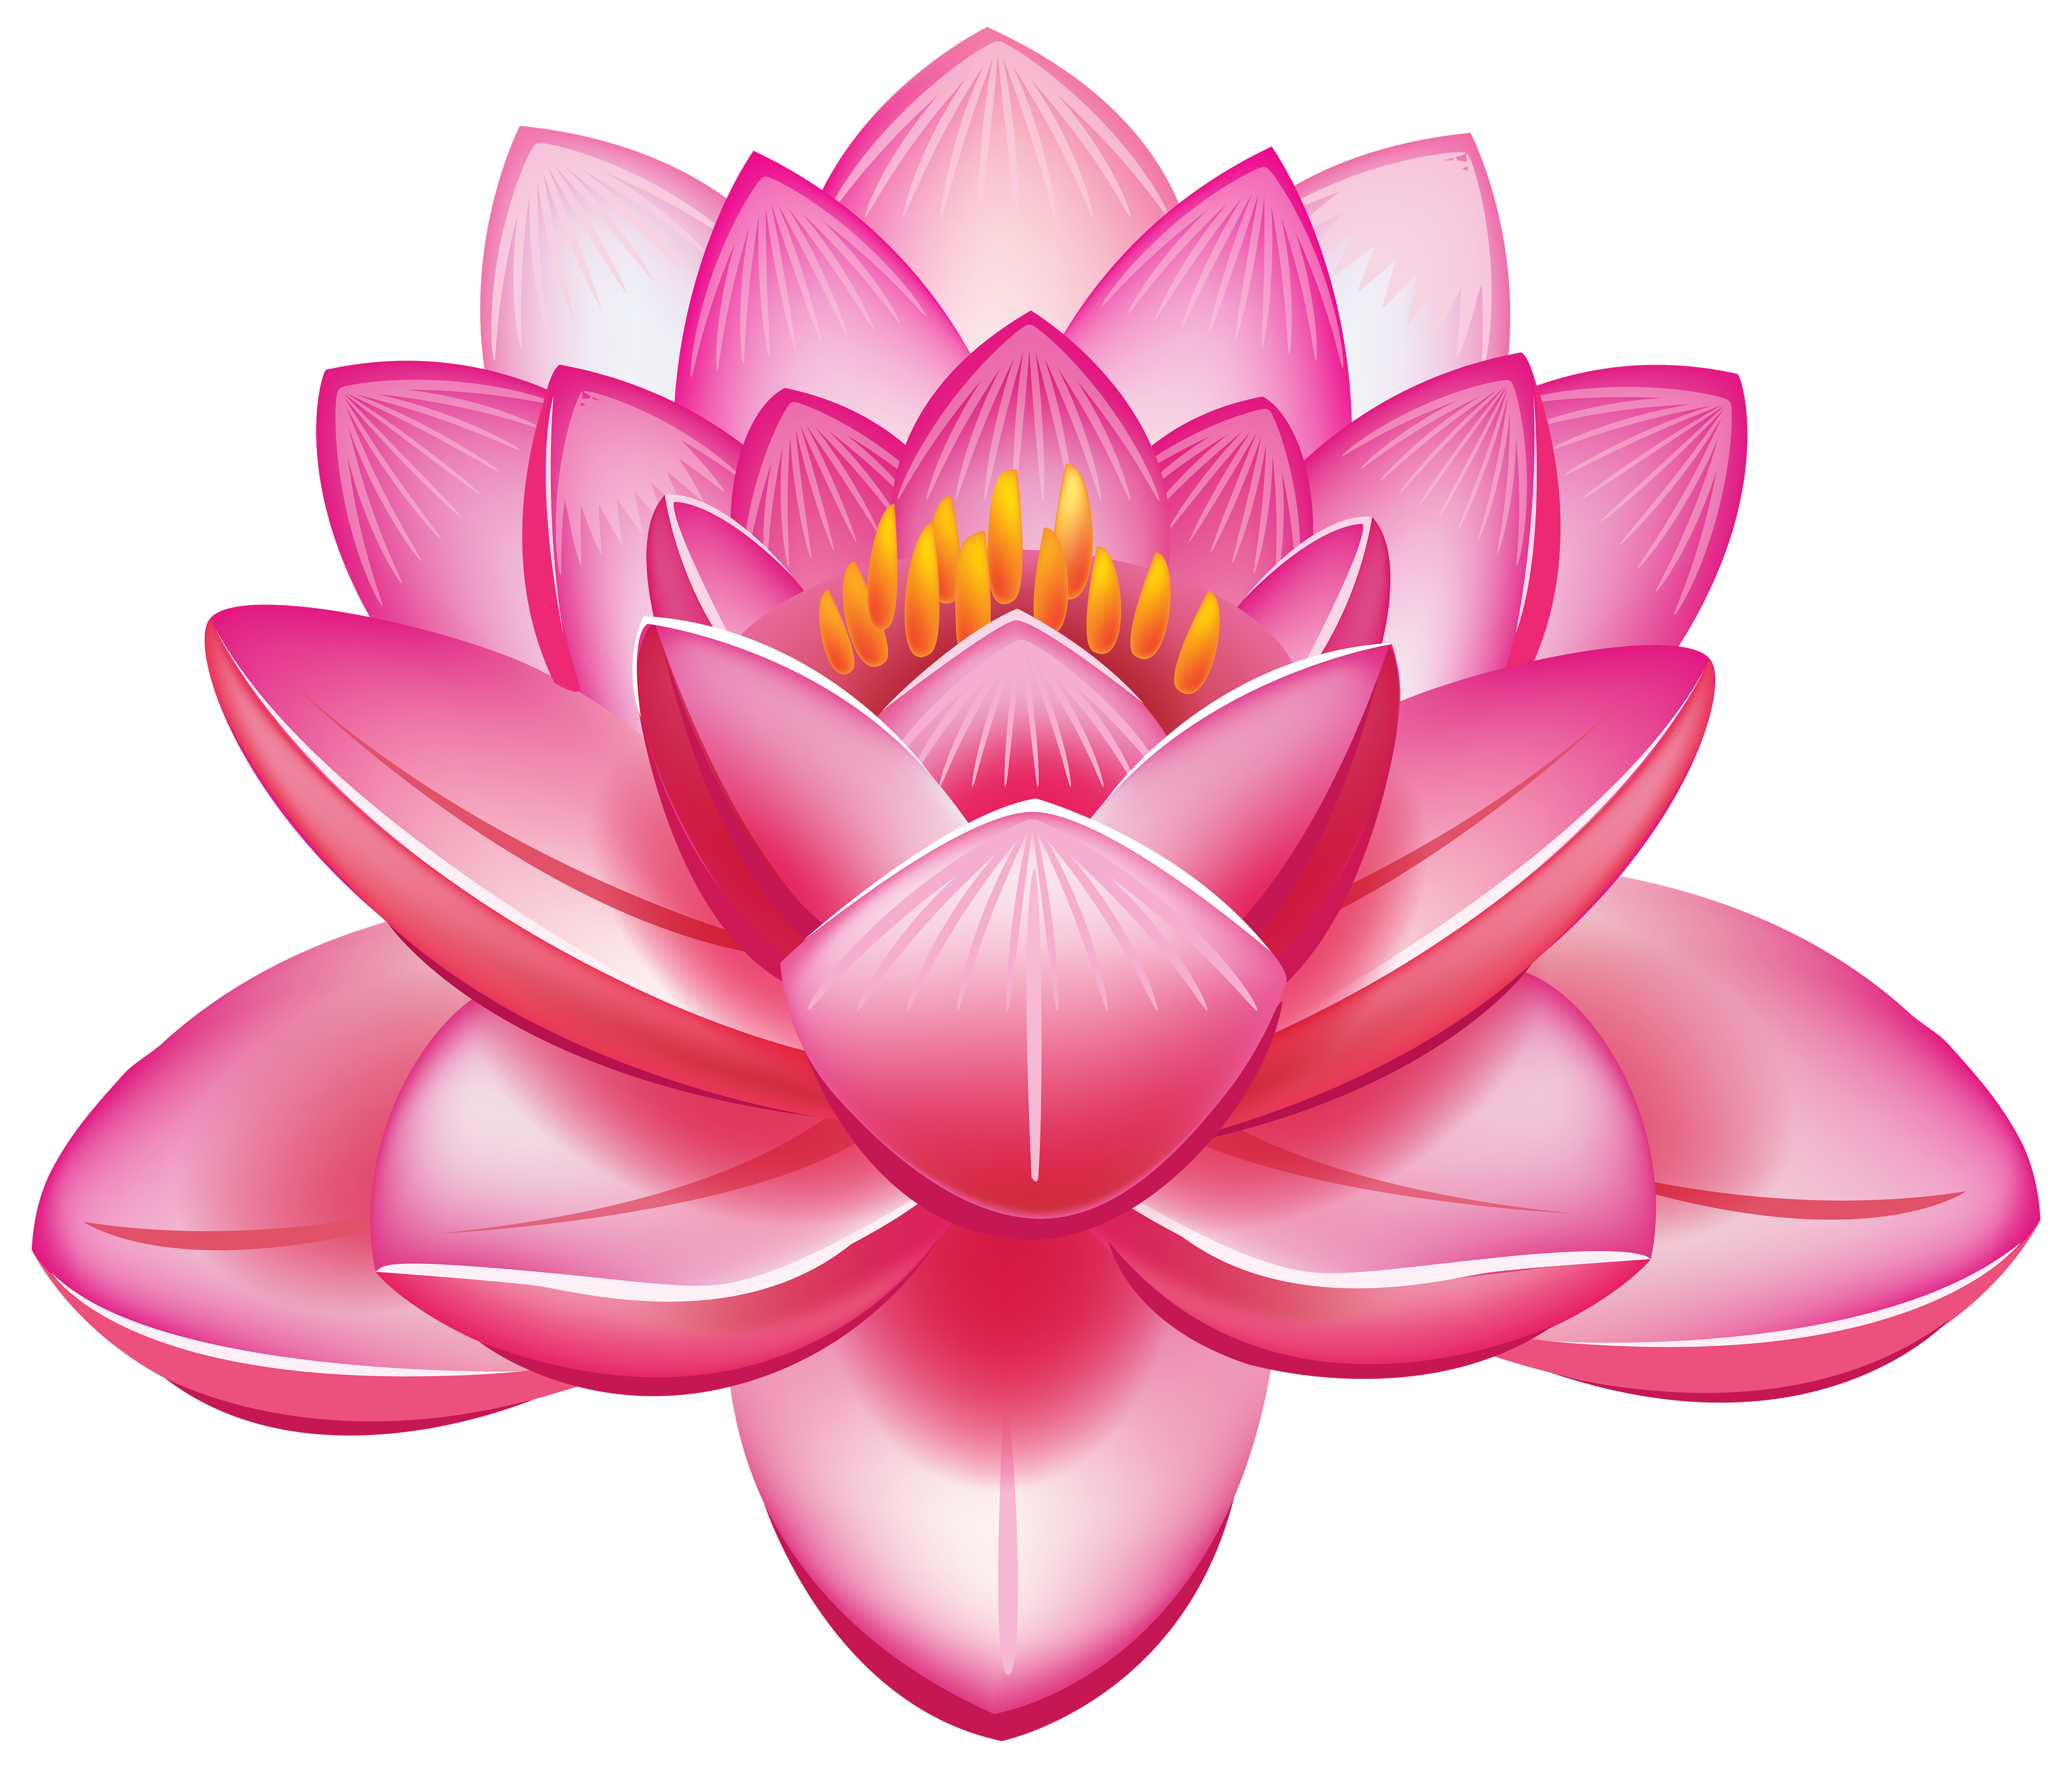 Water lily flower clipart banner freeuse CLIPART FLOWERS | Lotus Flower PNG Clipart - Best WEB Clipart ... banner freeuse